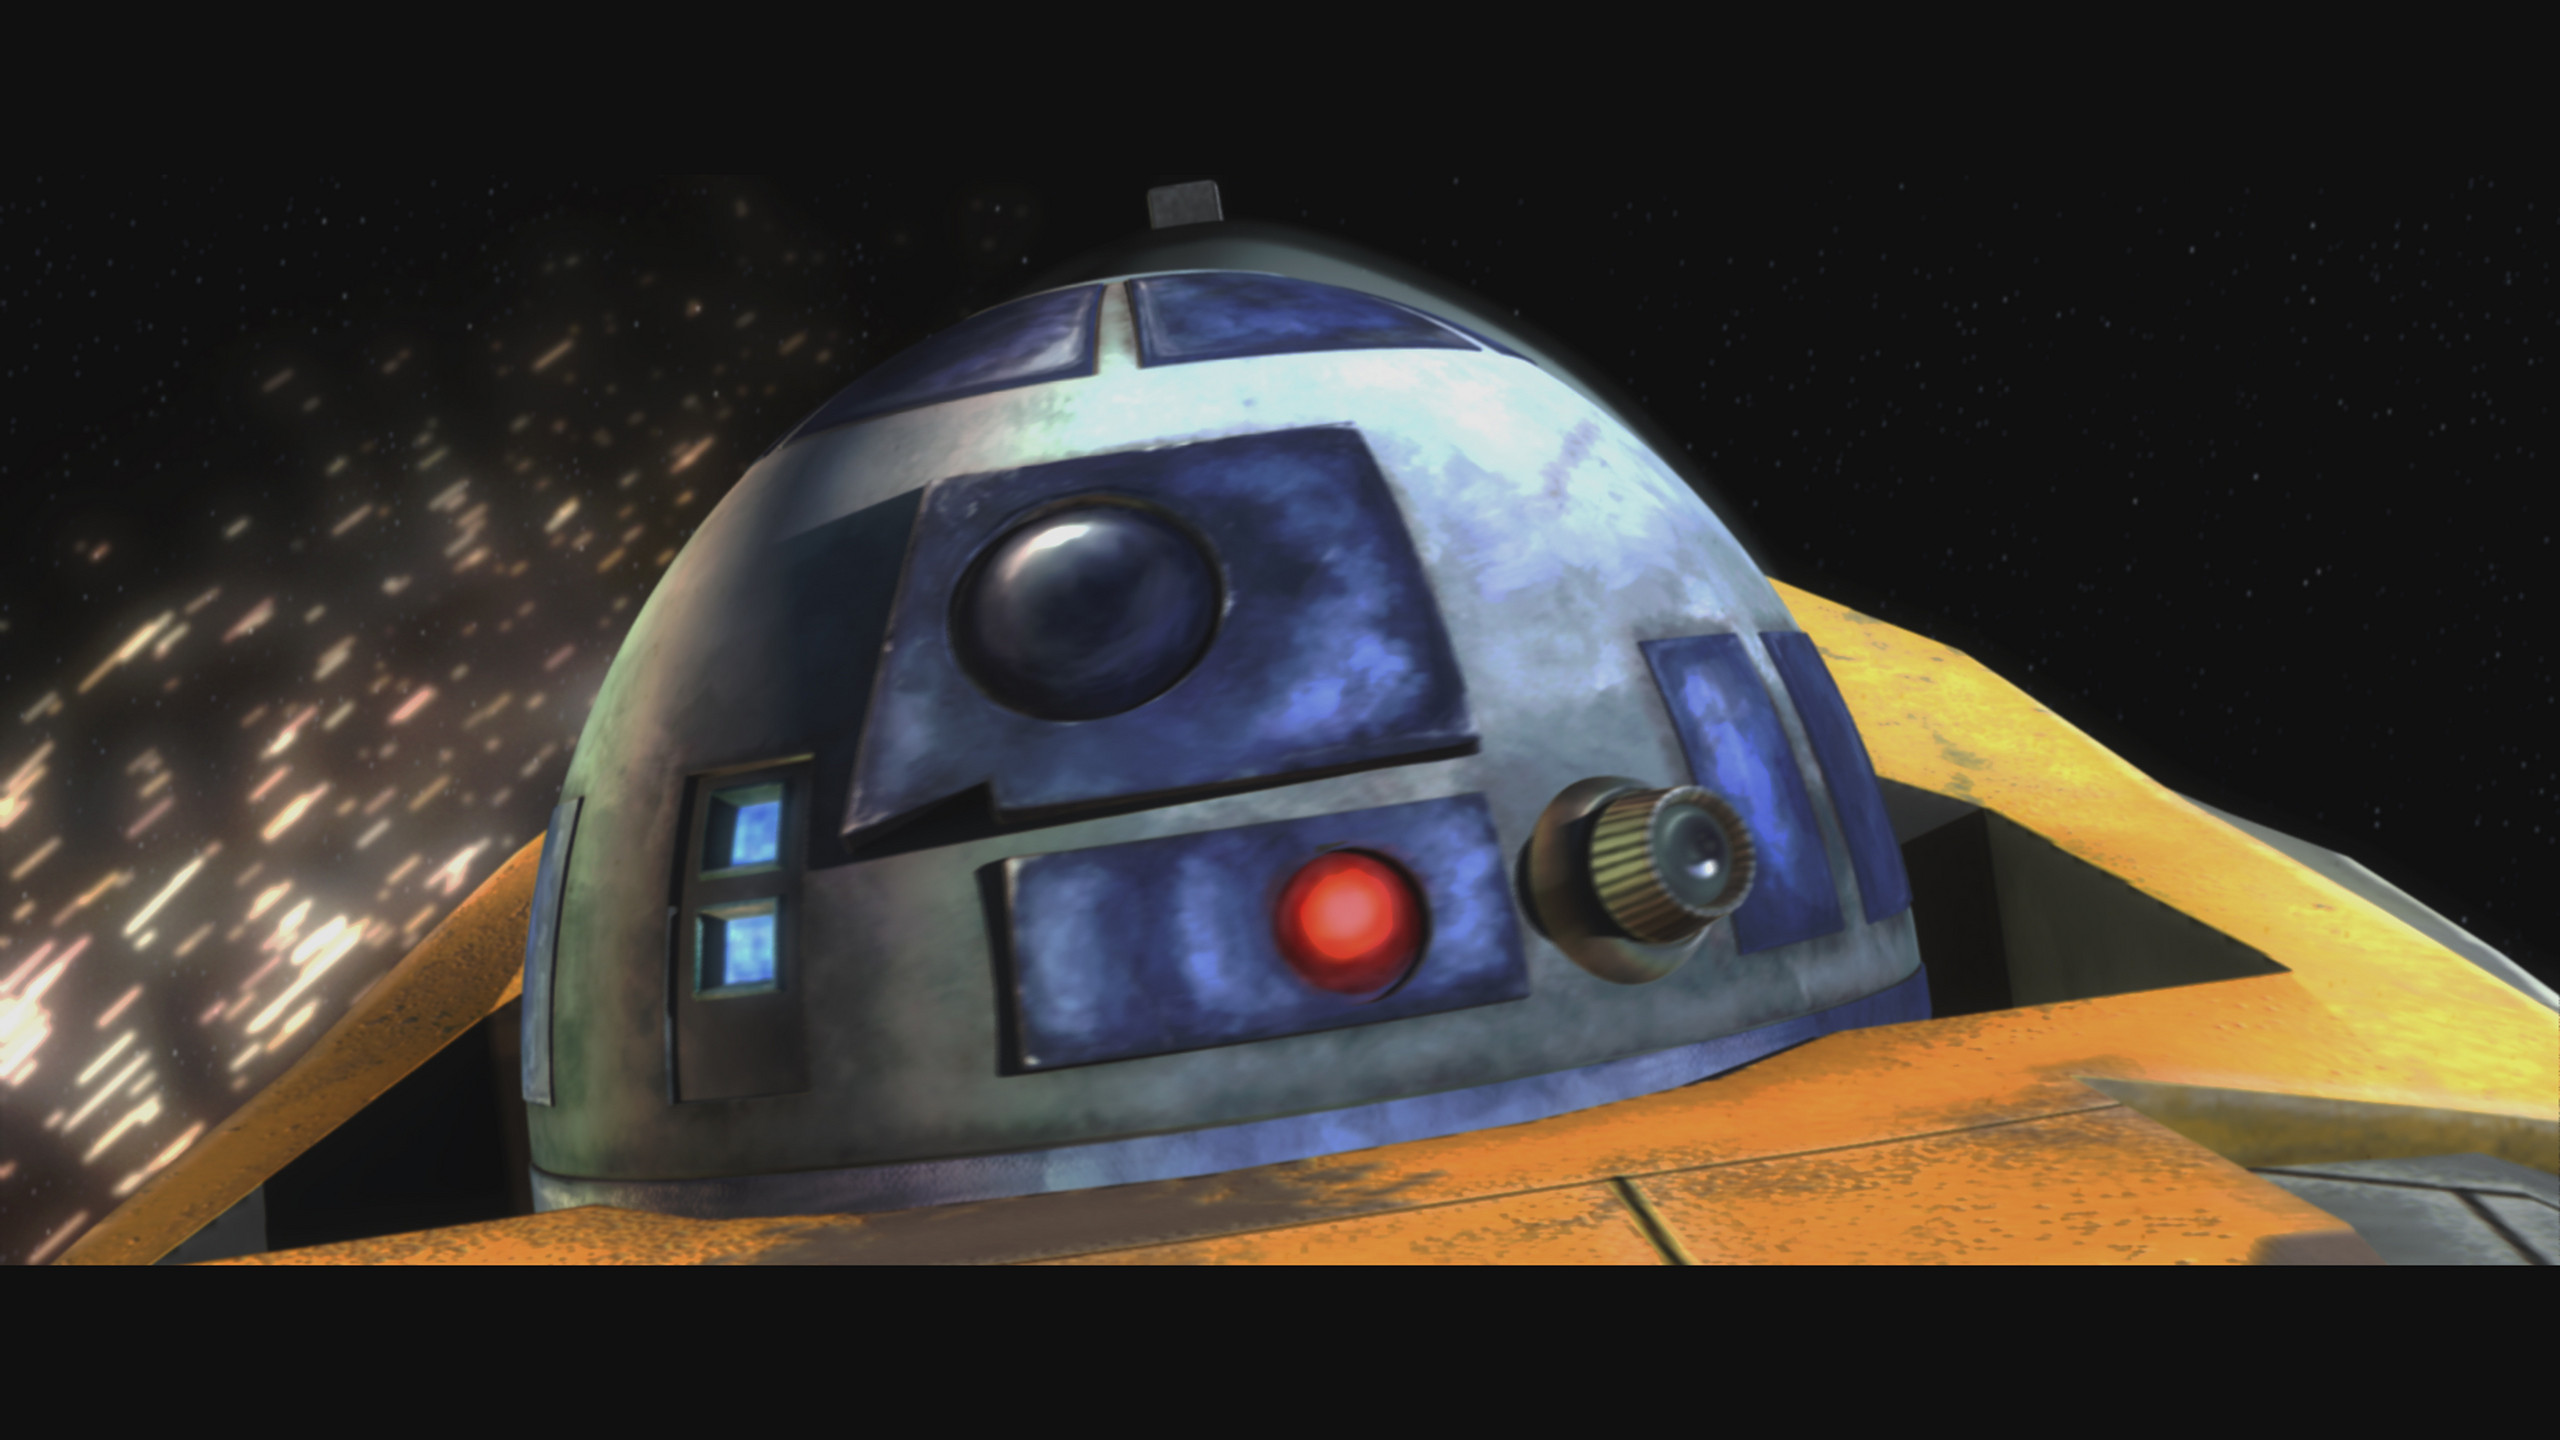 R2-D2 images Clone Wars Artoo HD wallpaper and background photos